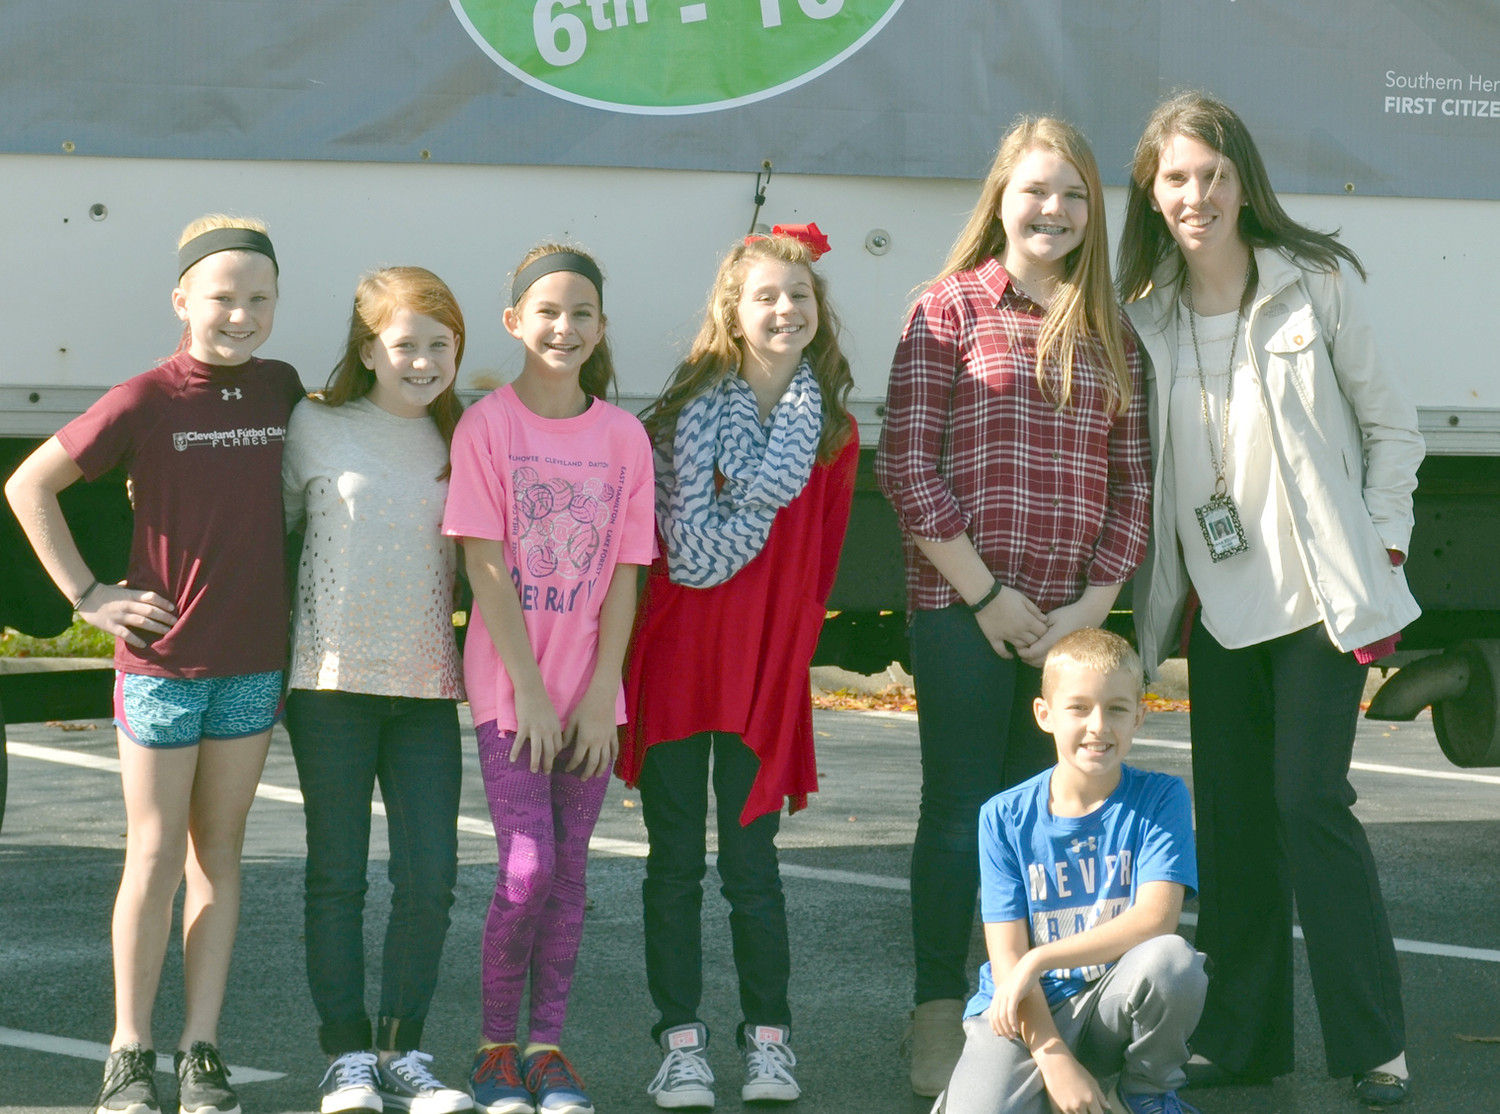 E.L. ROSS ELEMENTARY donations to the Southern Heritage Food Drive were delivered by, from left, Ashlyn Robbins, Lily Smith, Aspen Ownby, Emma Claire Smith, Natalie Clark, Andrew Miolen and Dana Storey.